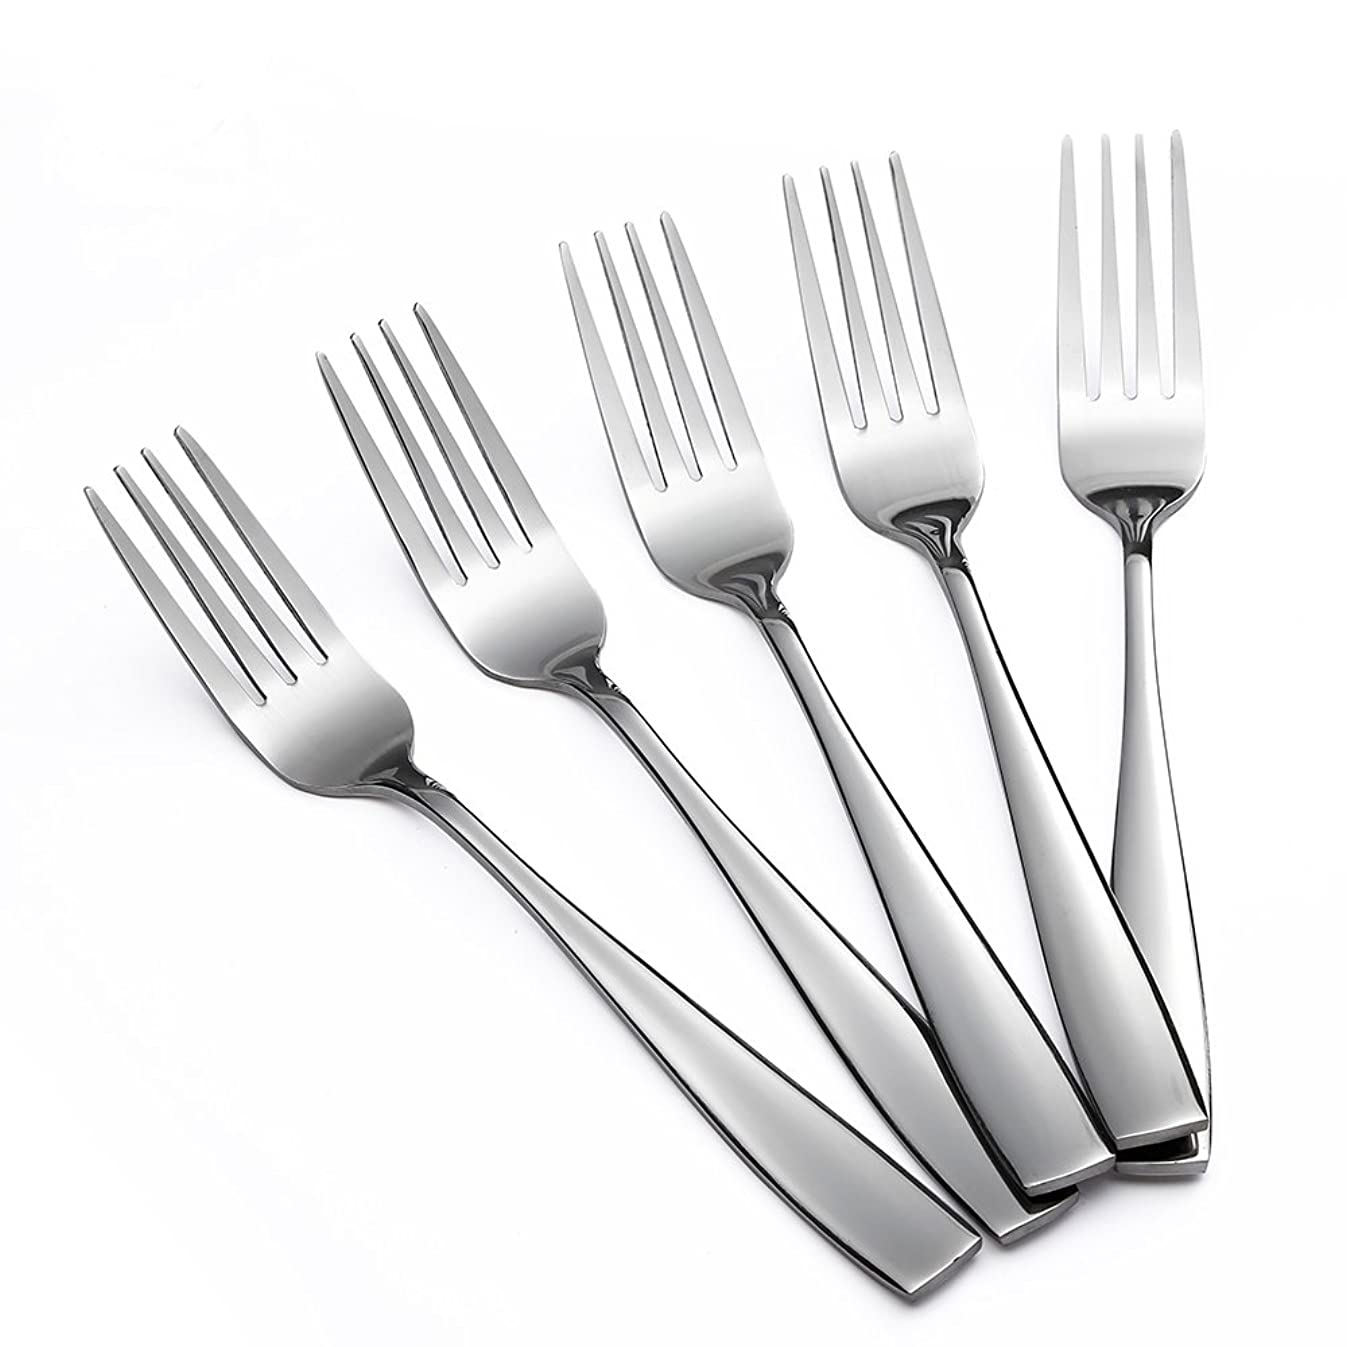 Eslite Stainless Steel Dinner/Salad Forks Set,12-Piece,8 Inches